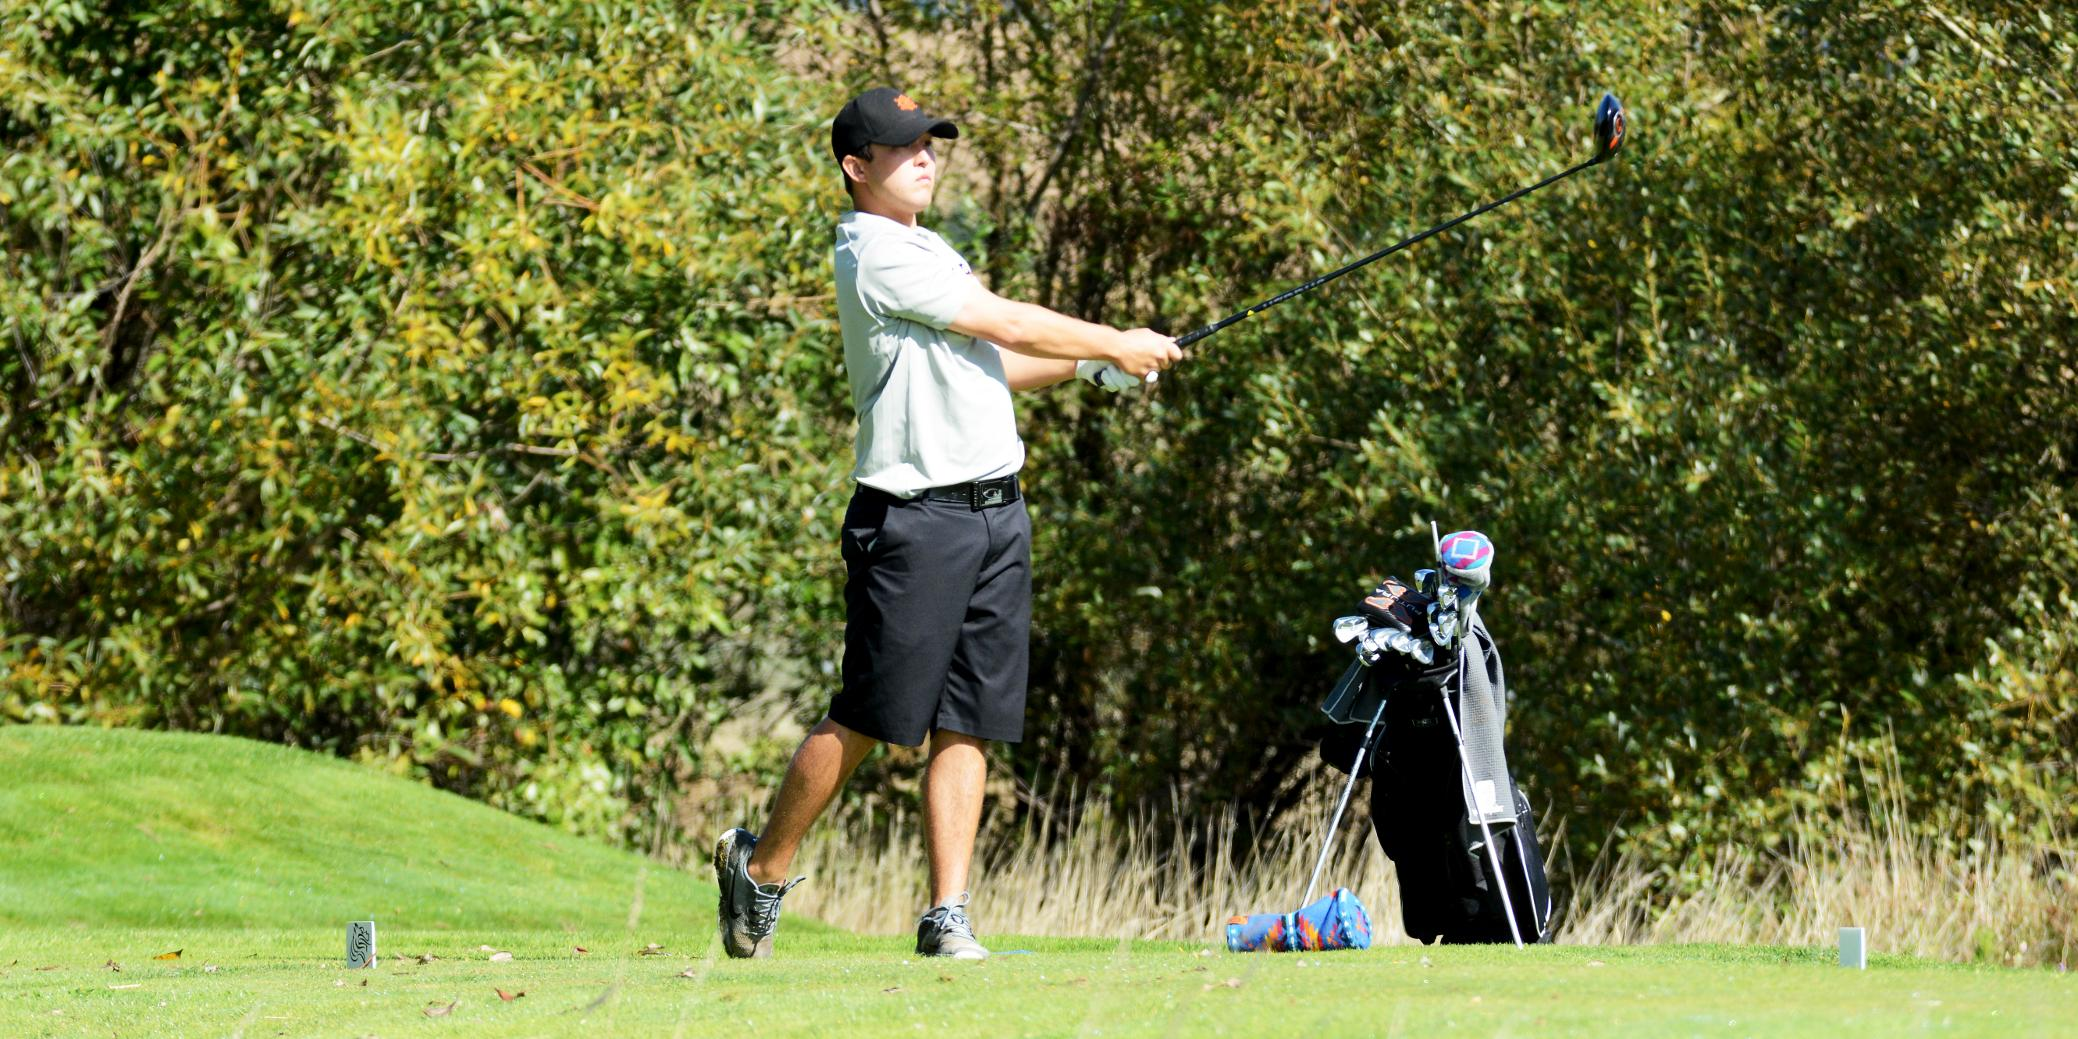 Lewis & Clark improves greatly upon last year's NWC Fall Classic